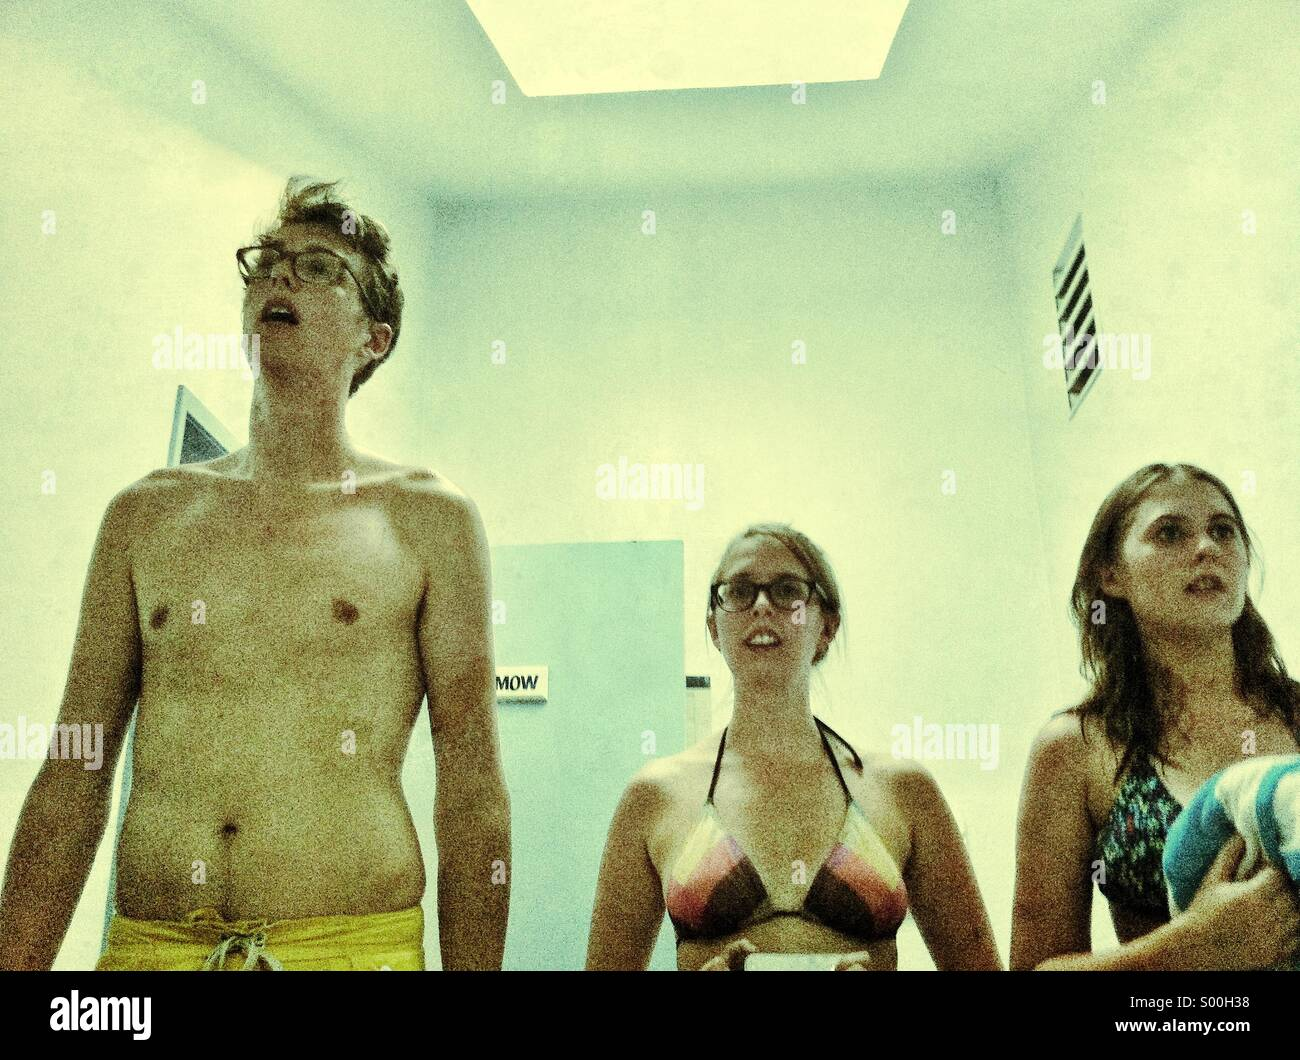 Man and women in mirror selfie - Stock Image